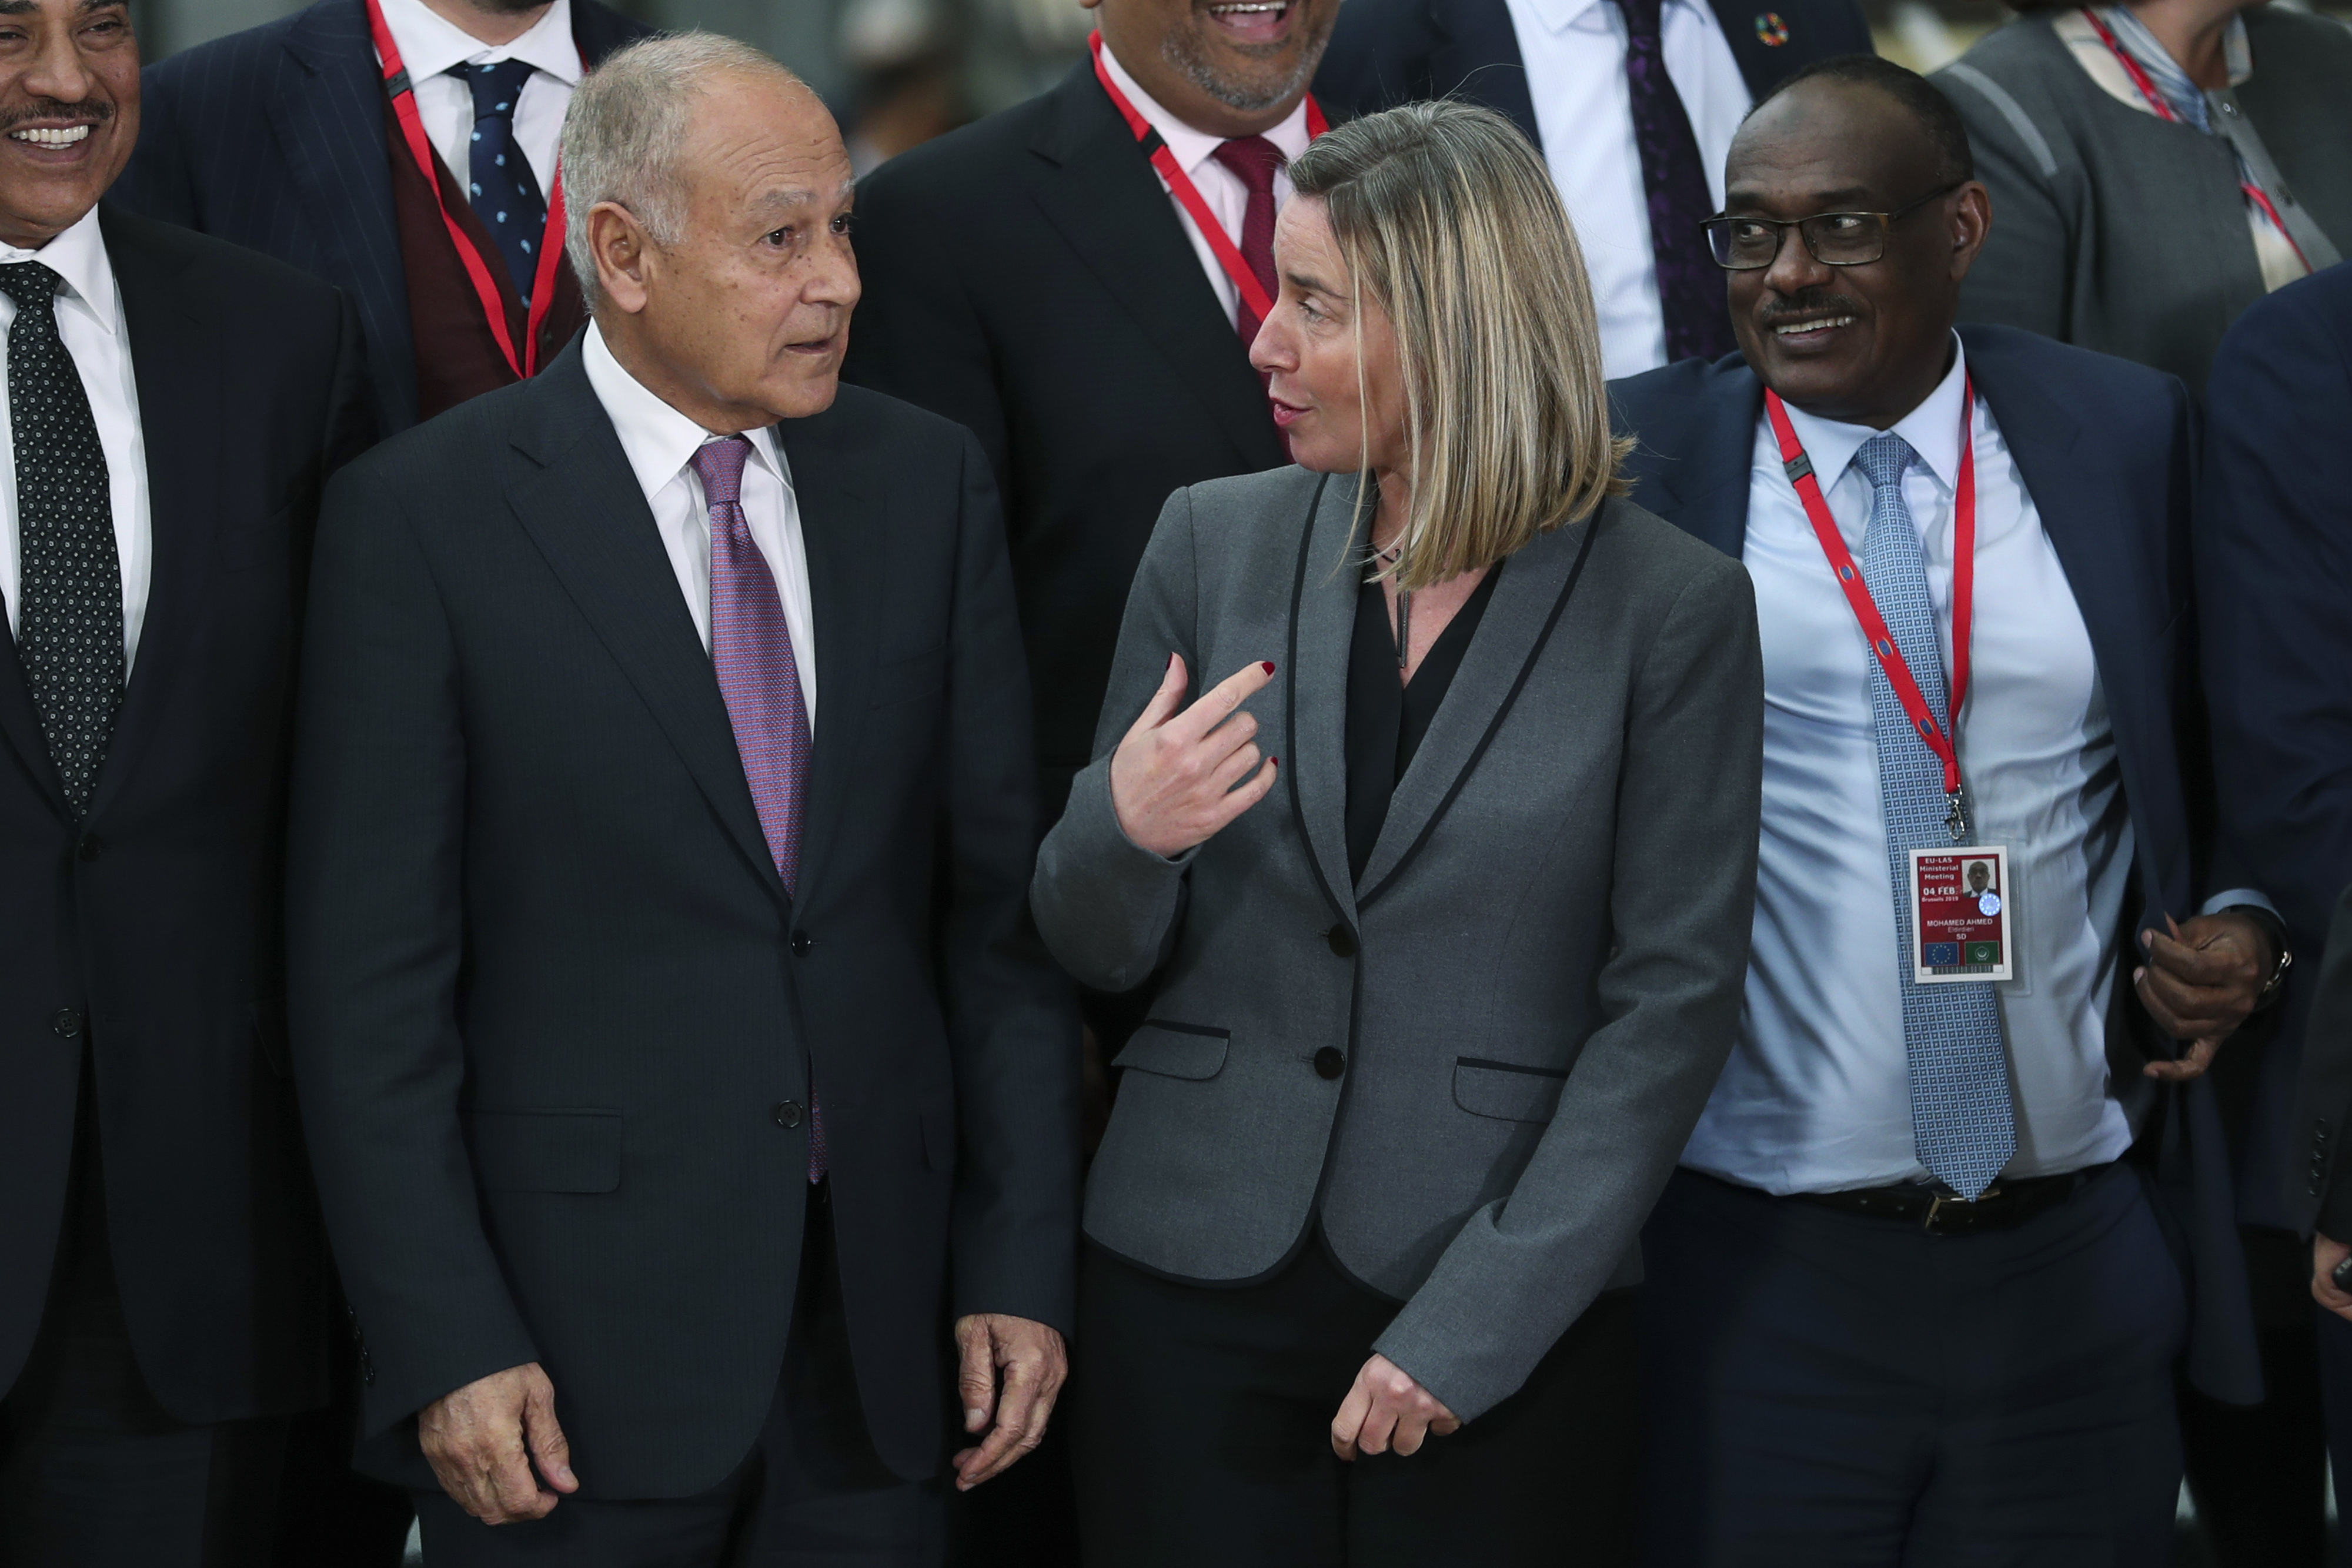 EU, Arab League agree to disagree over meeting statement